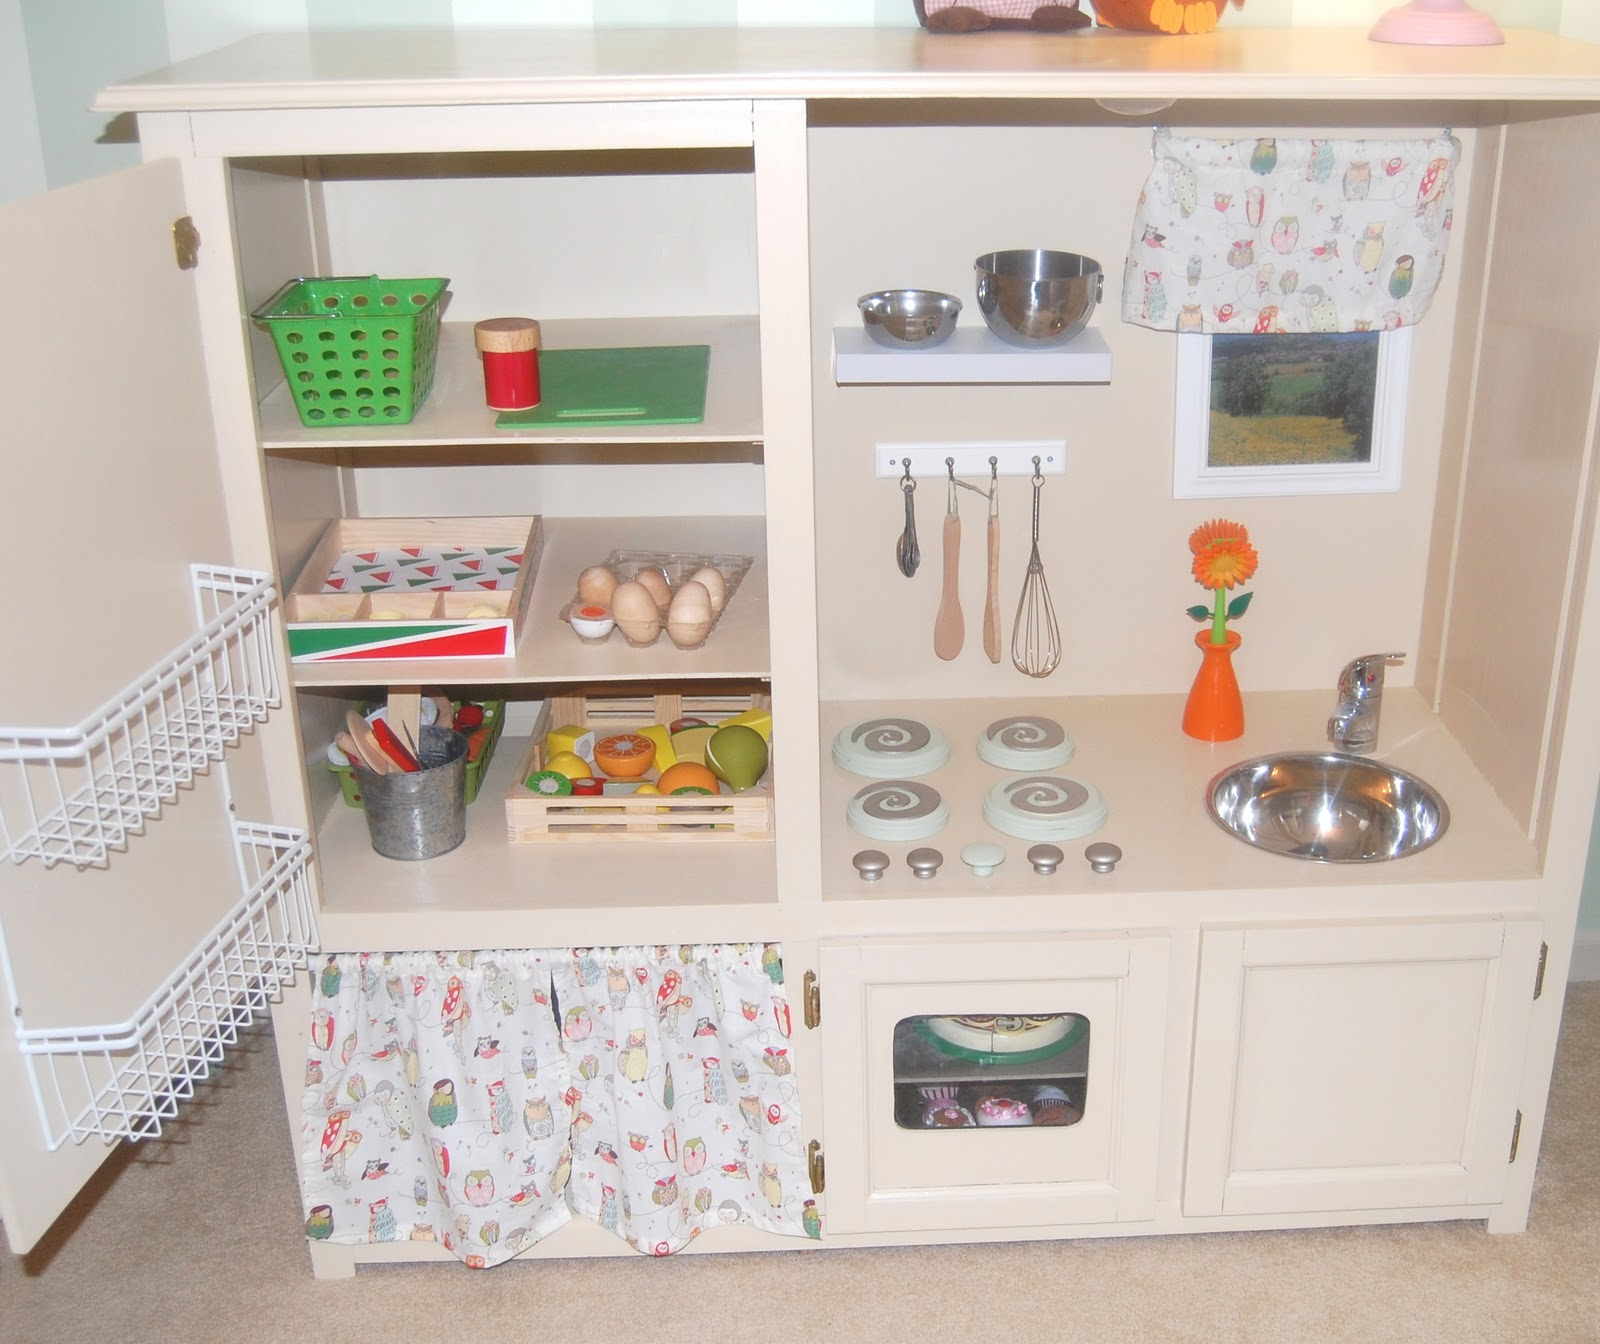 Entertainment Center Kitchen Set: HeyDay Living: Play Kitchen- Repurposed Entertainment Center